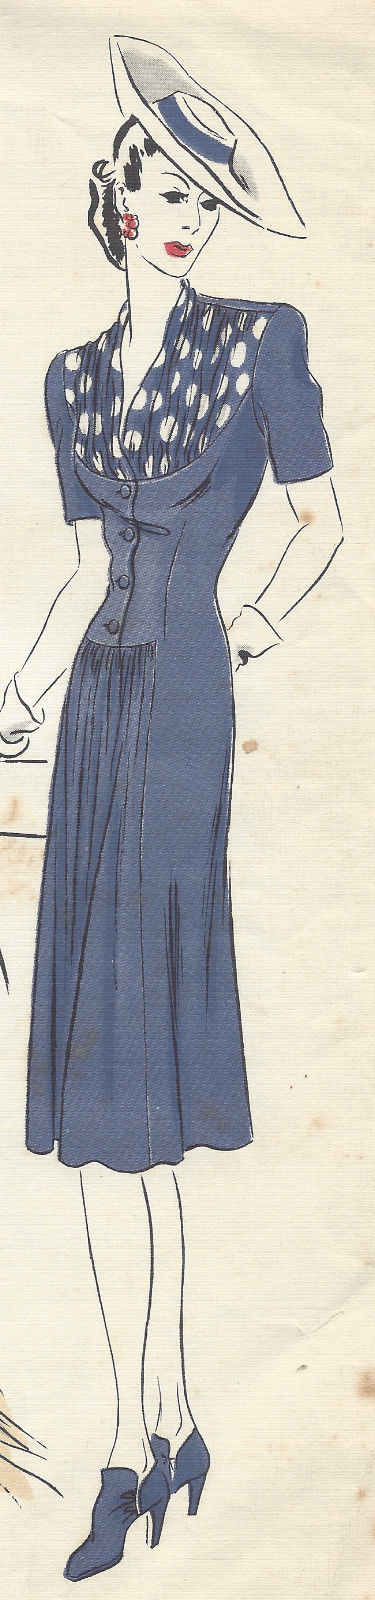 1943-WW2-Vintage-VOGUE-Sewing-Pattern-B30-DRESS-1129-251359282317-4